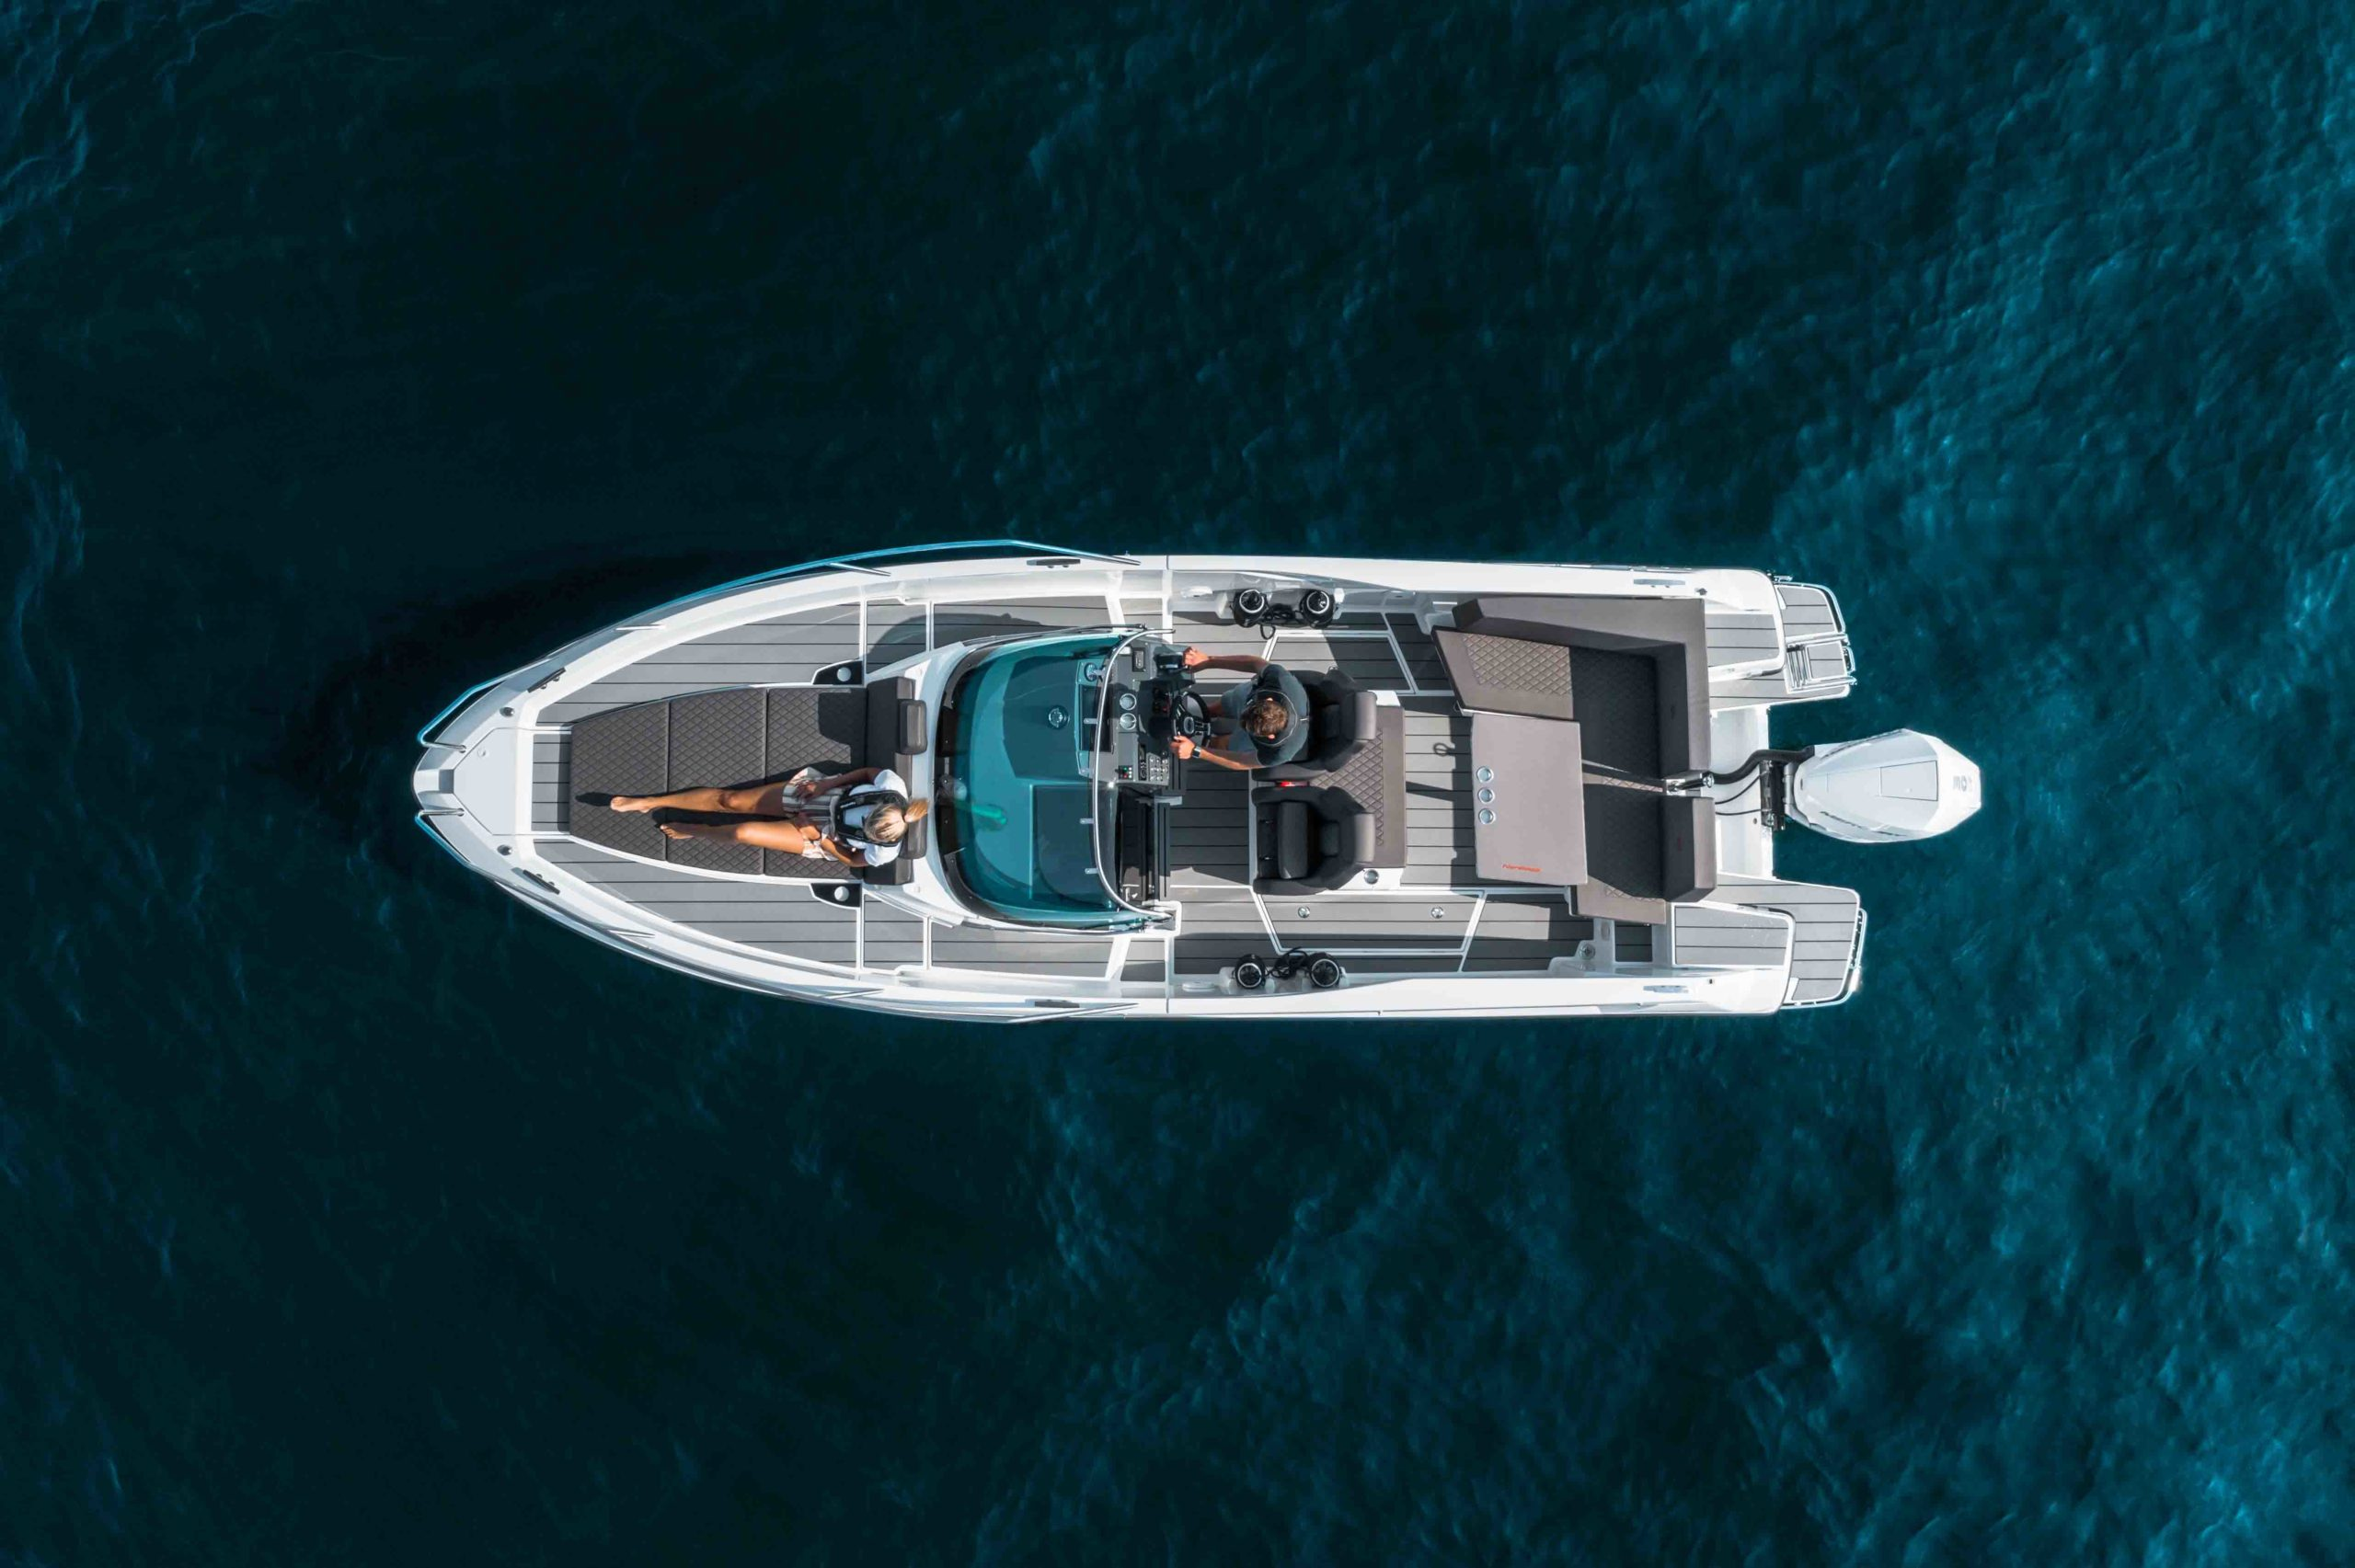 LR_Enduro 805 at sea - boat overview seen from air